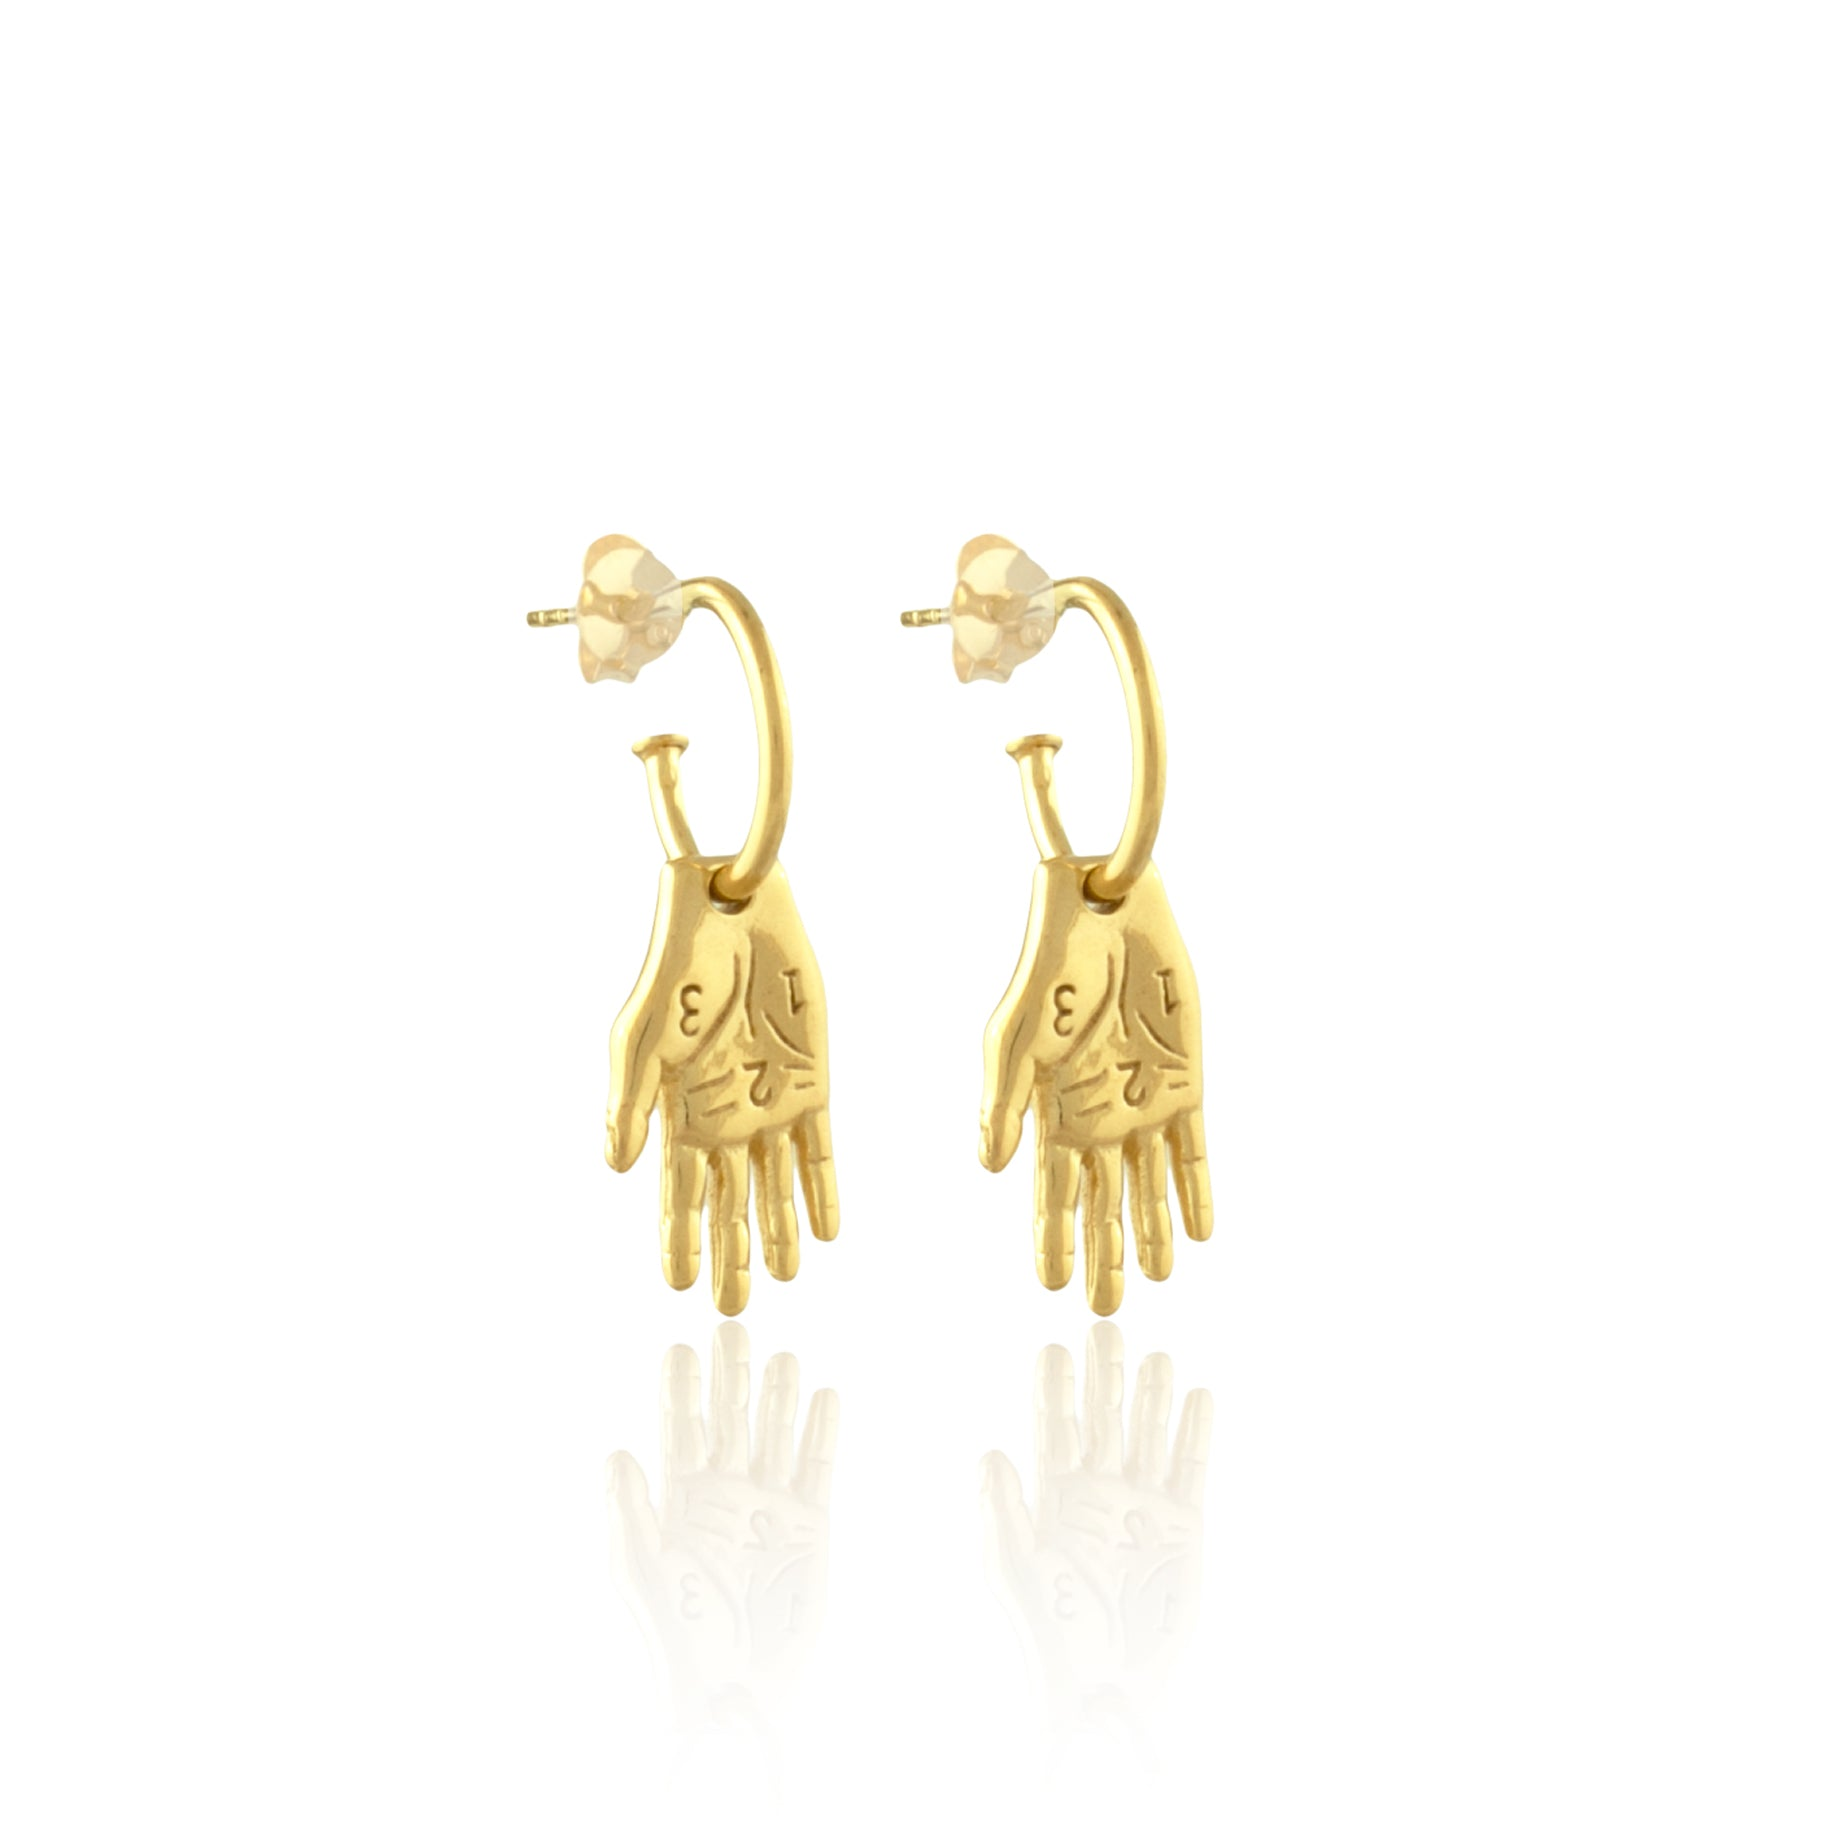 Mano Amiga Hand Earrings Frida Kahlo Collection Luna Rose